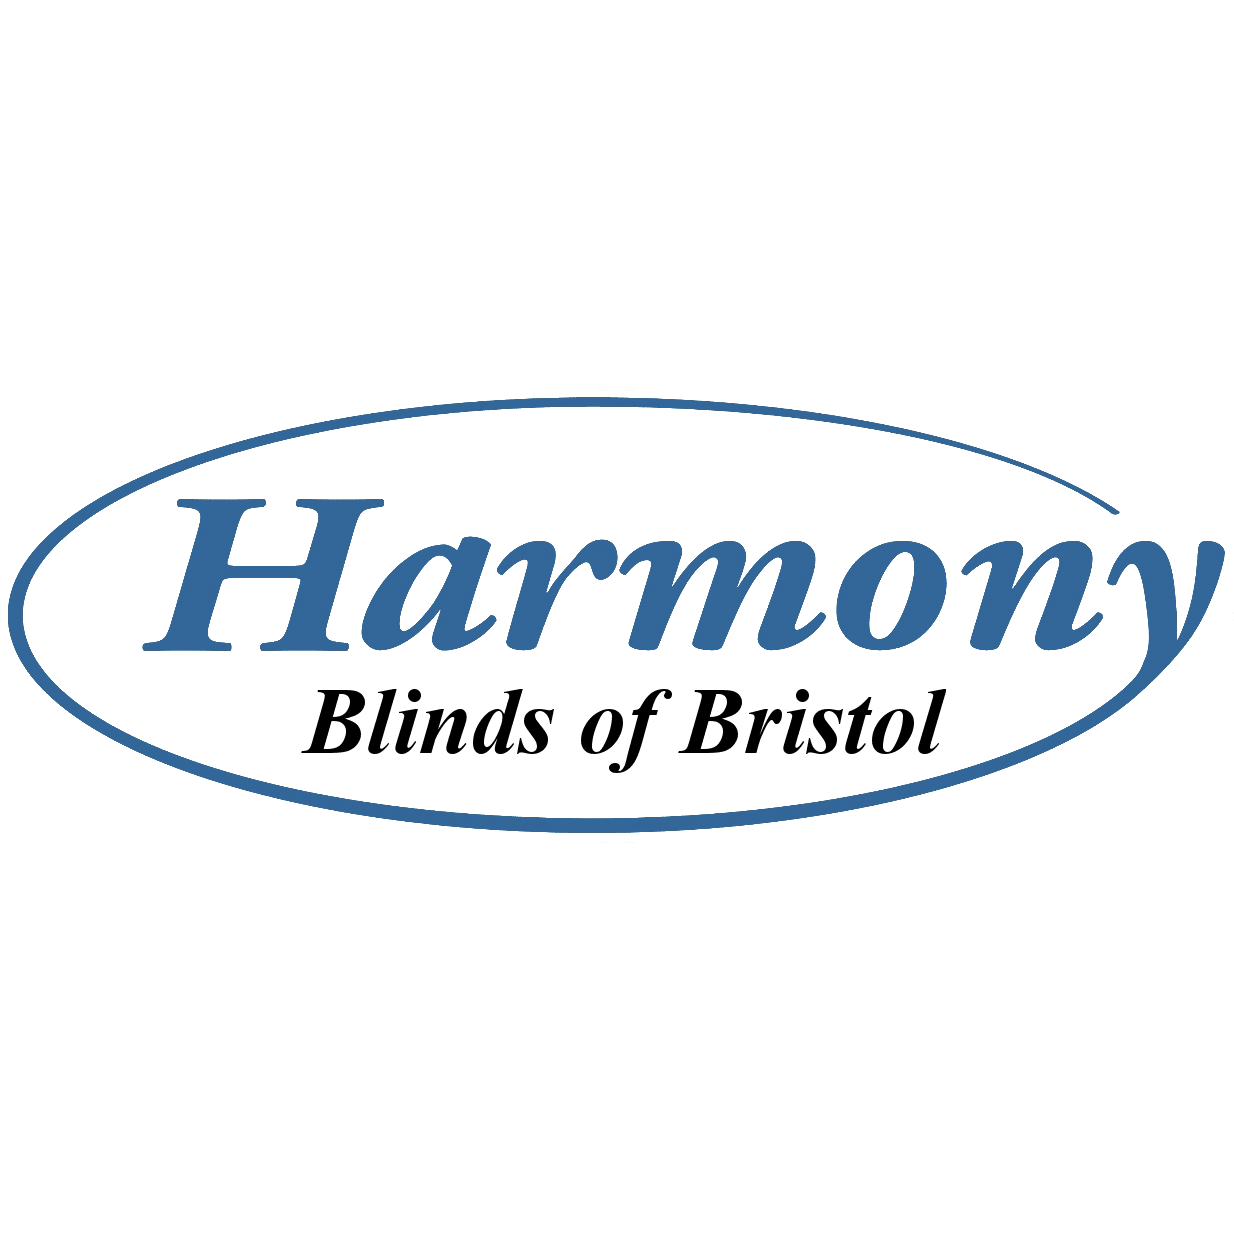 Harmony Blinds of Bristol - Bristol, Gloucestershire BS34 5PA - 01179 314141 | ShowMeLocal.com